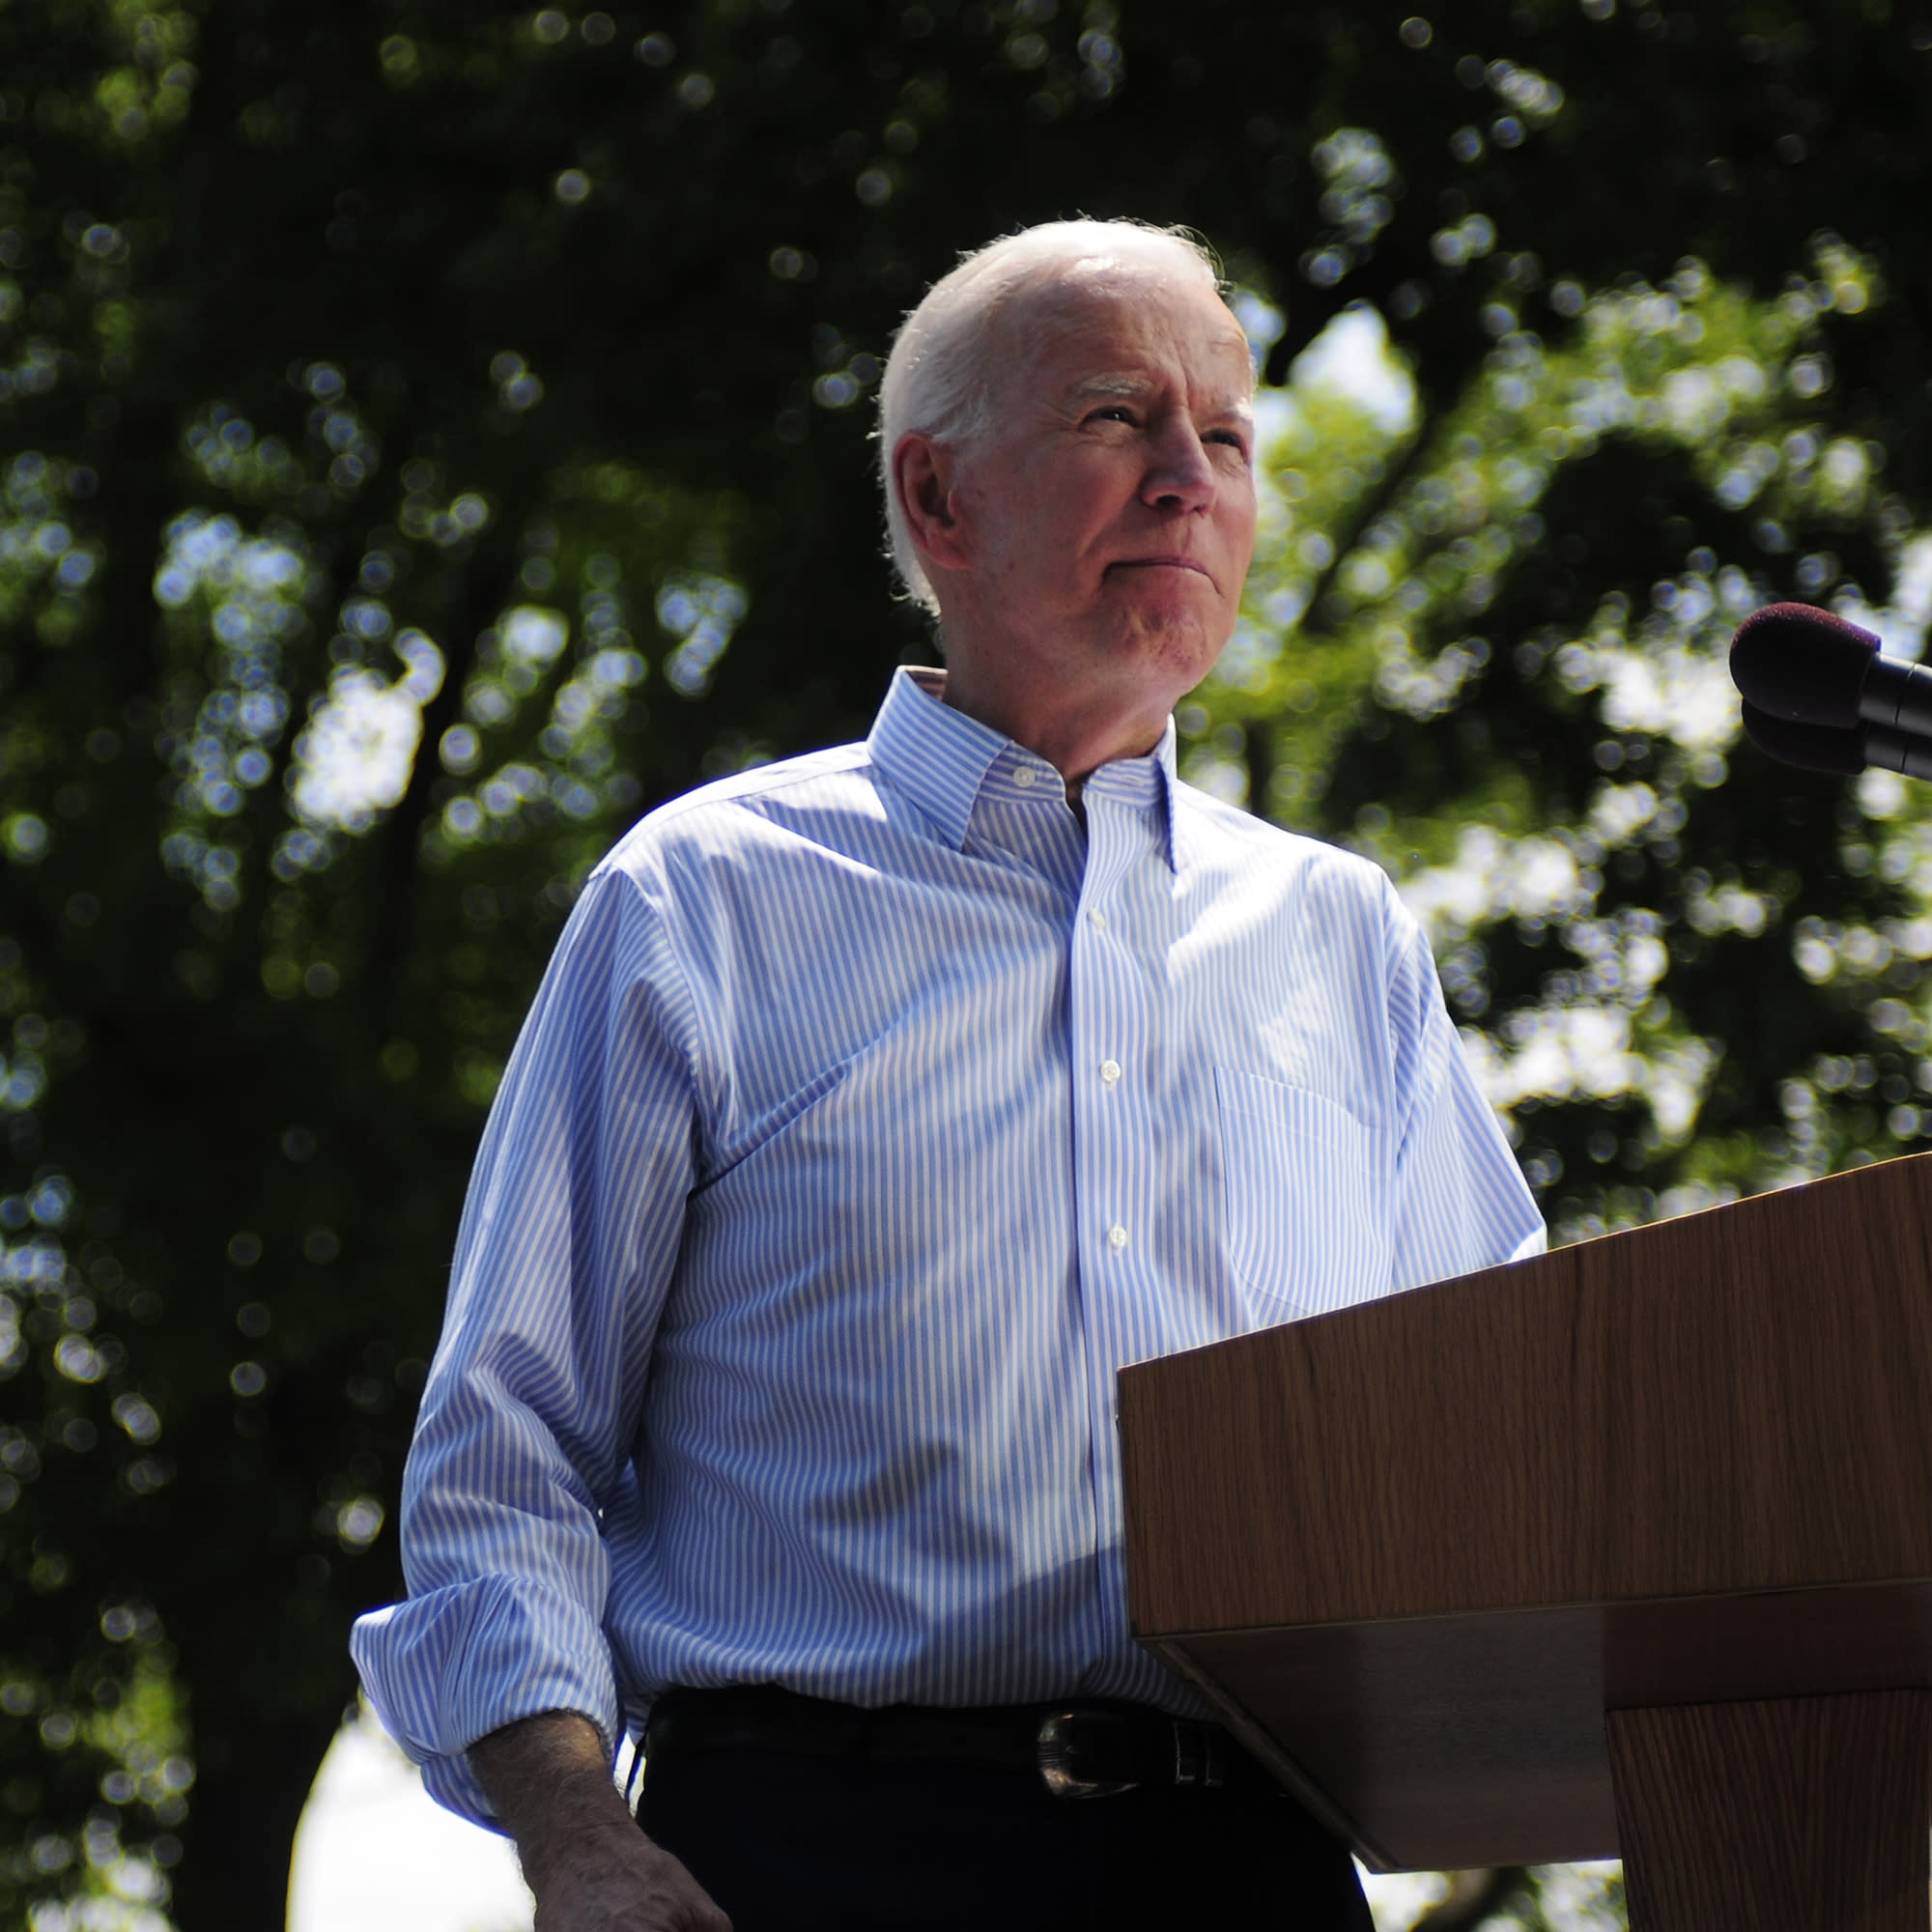 North Carolina man accused of threatening to kill Joe Biden